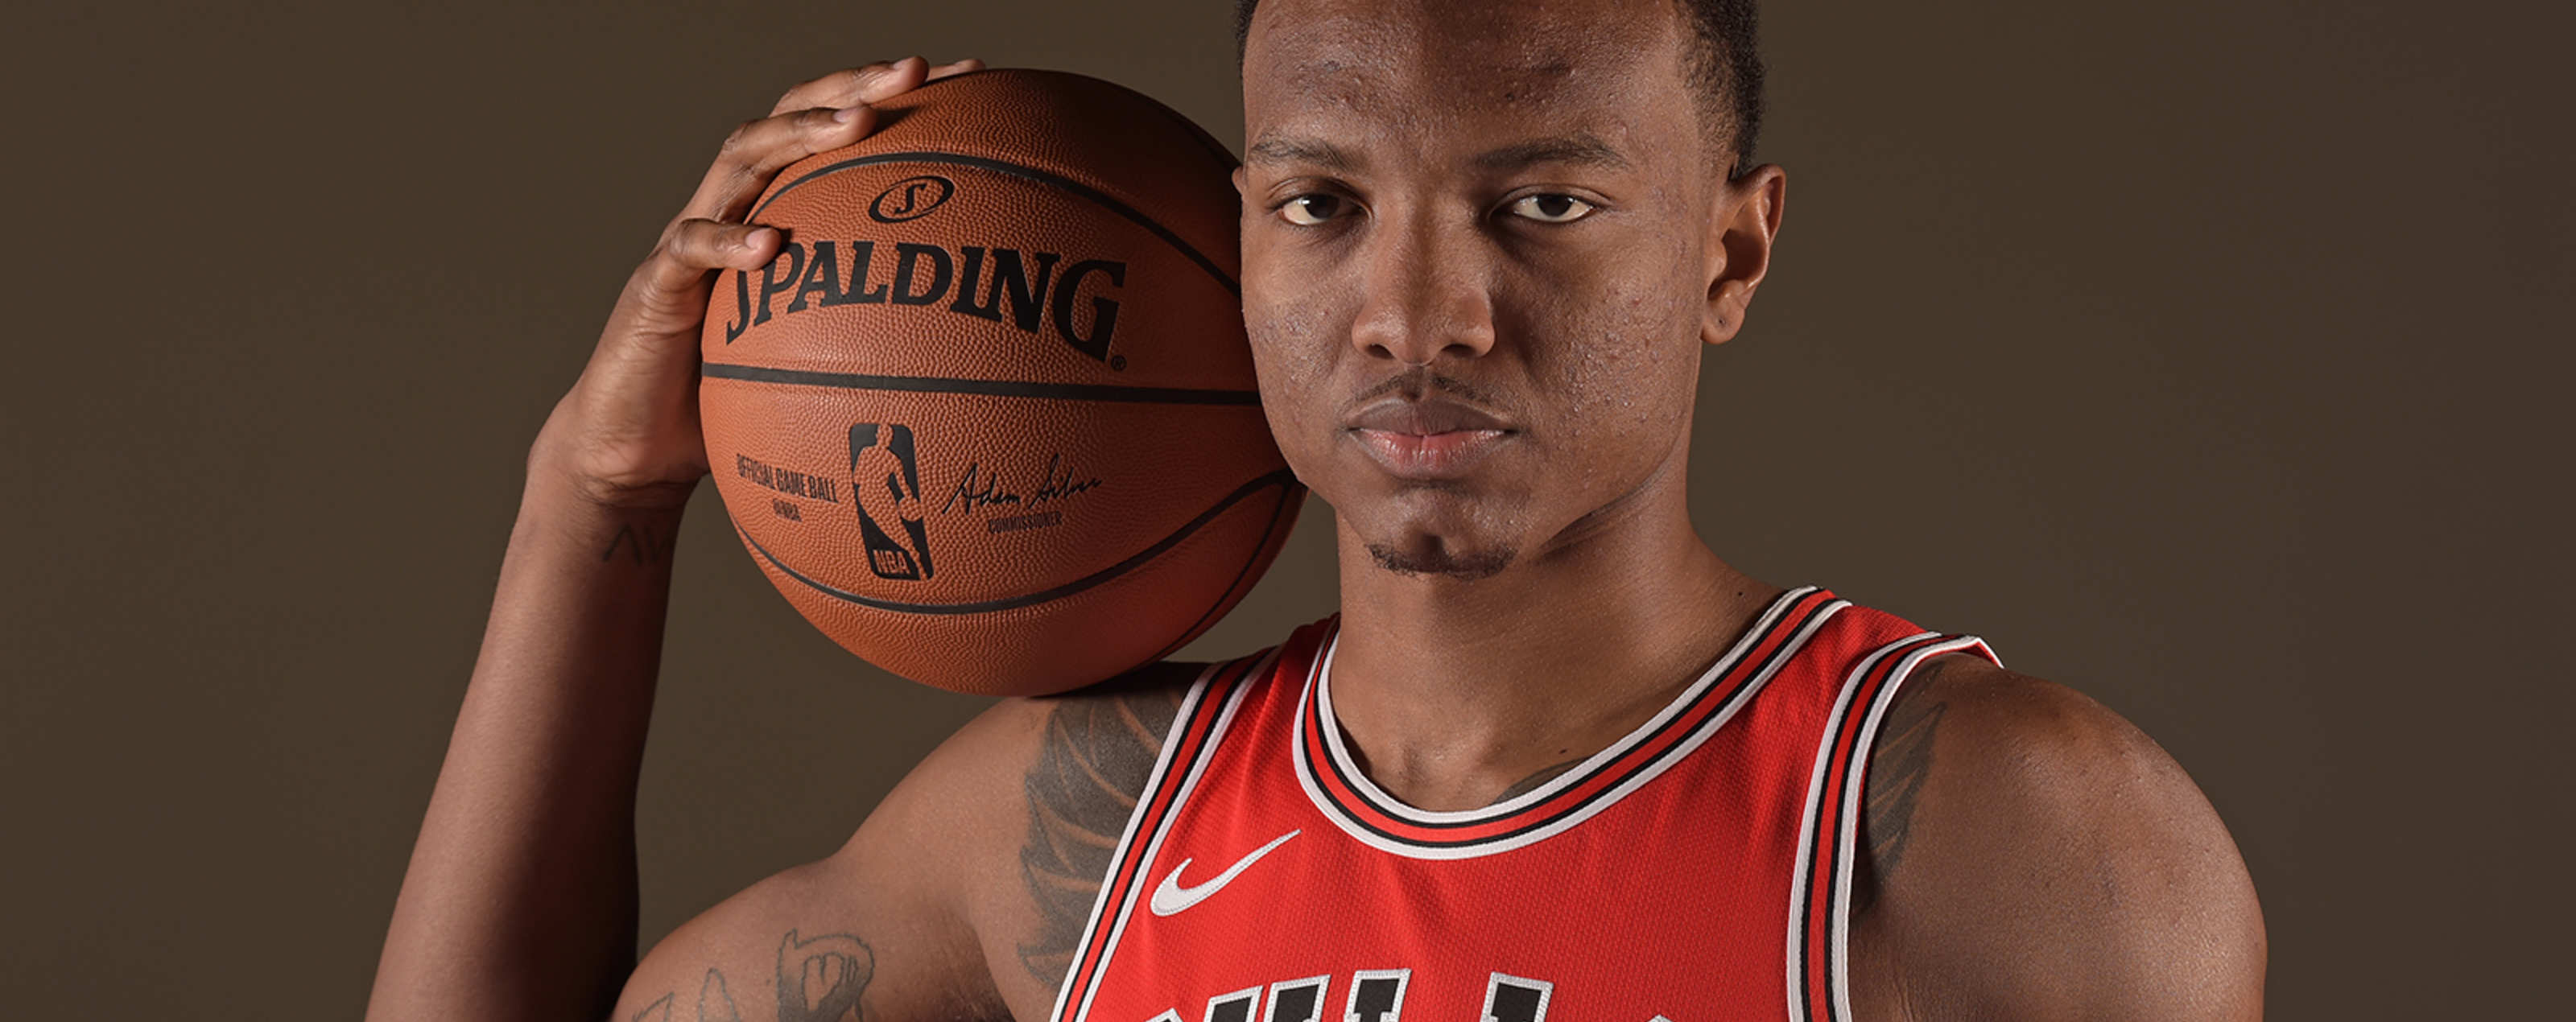 913b5c52b Wendell Carter Jr  Most Likely To Succeed. After being ...